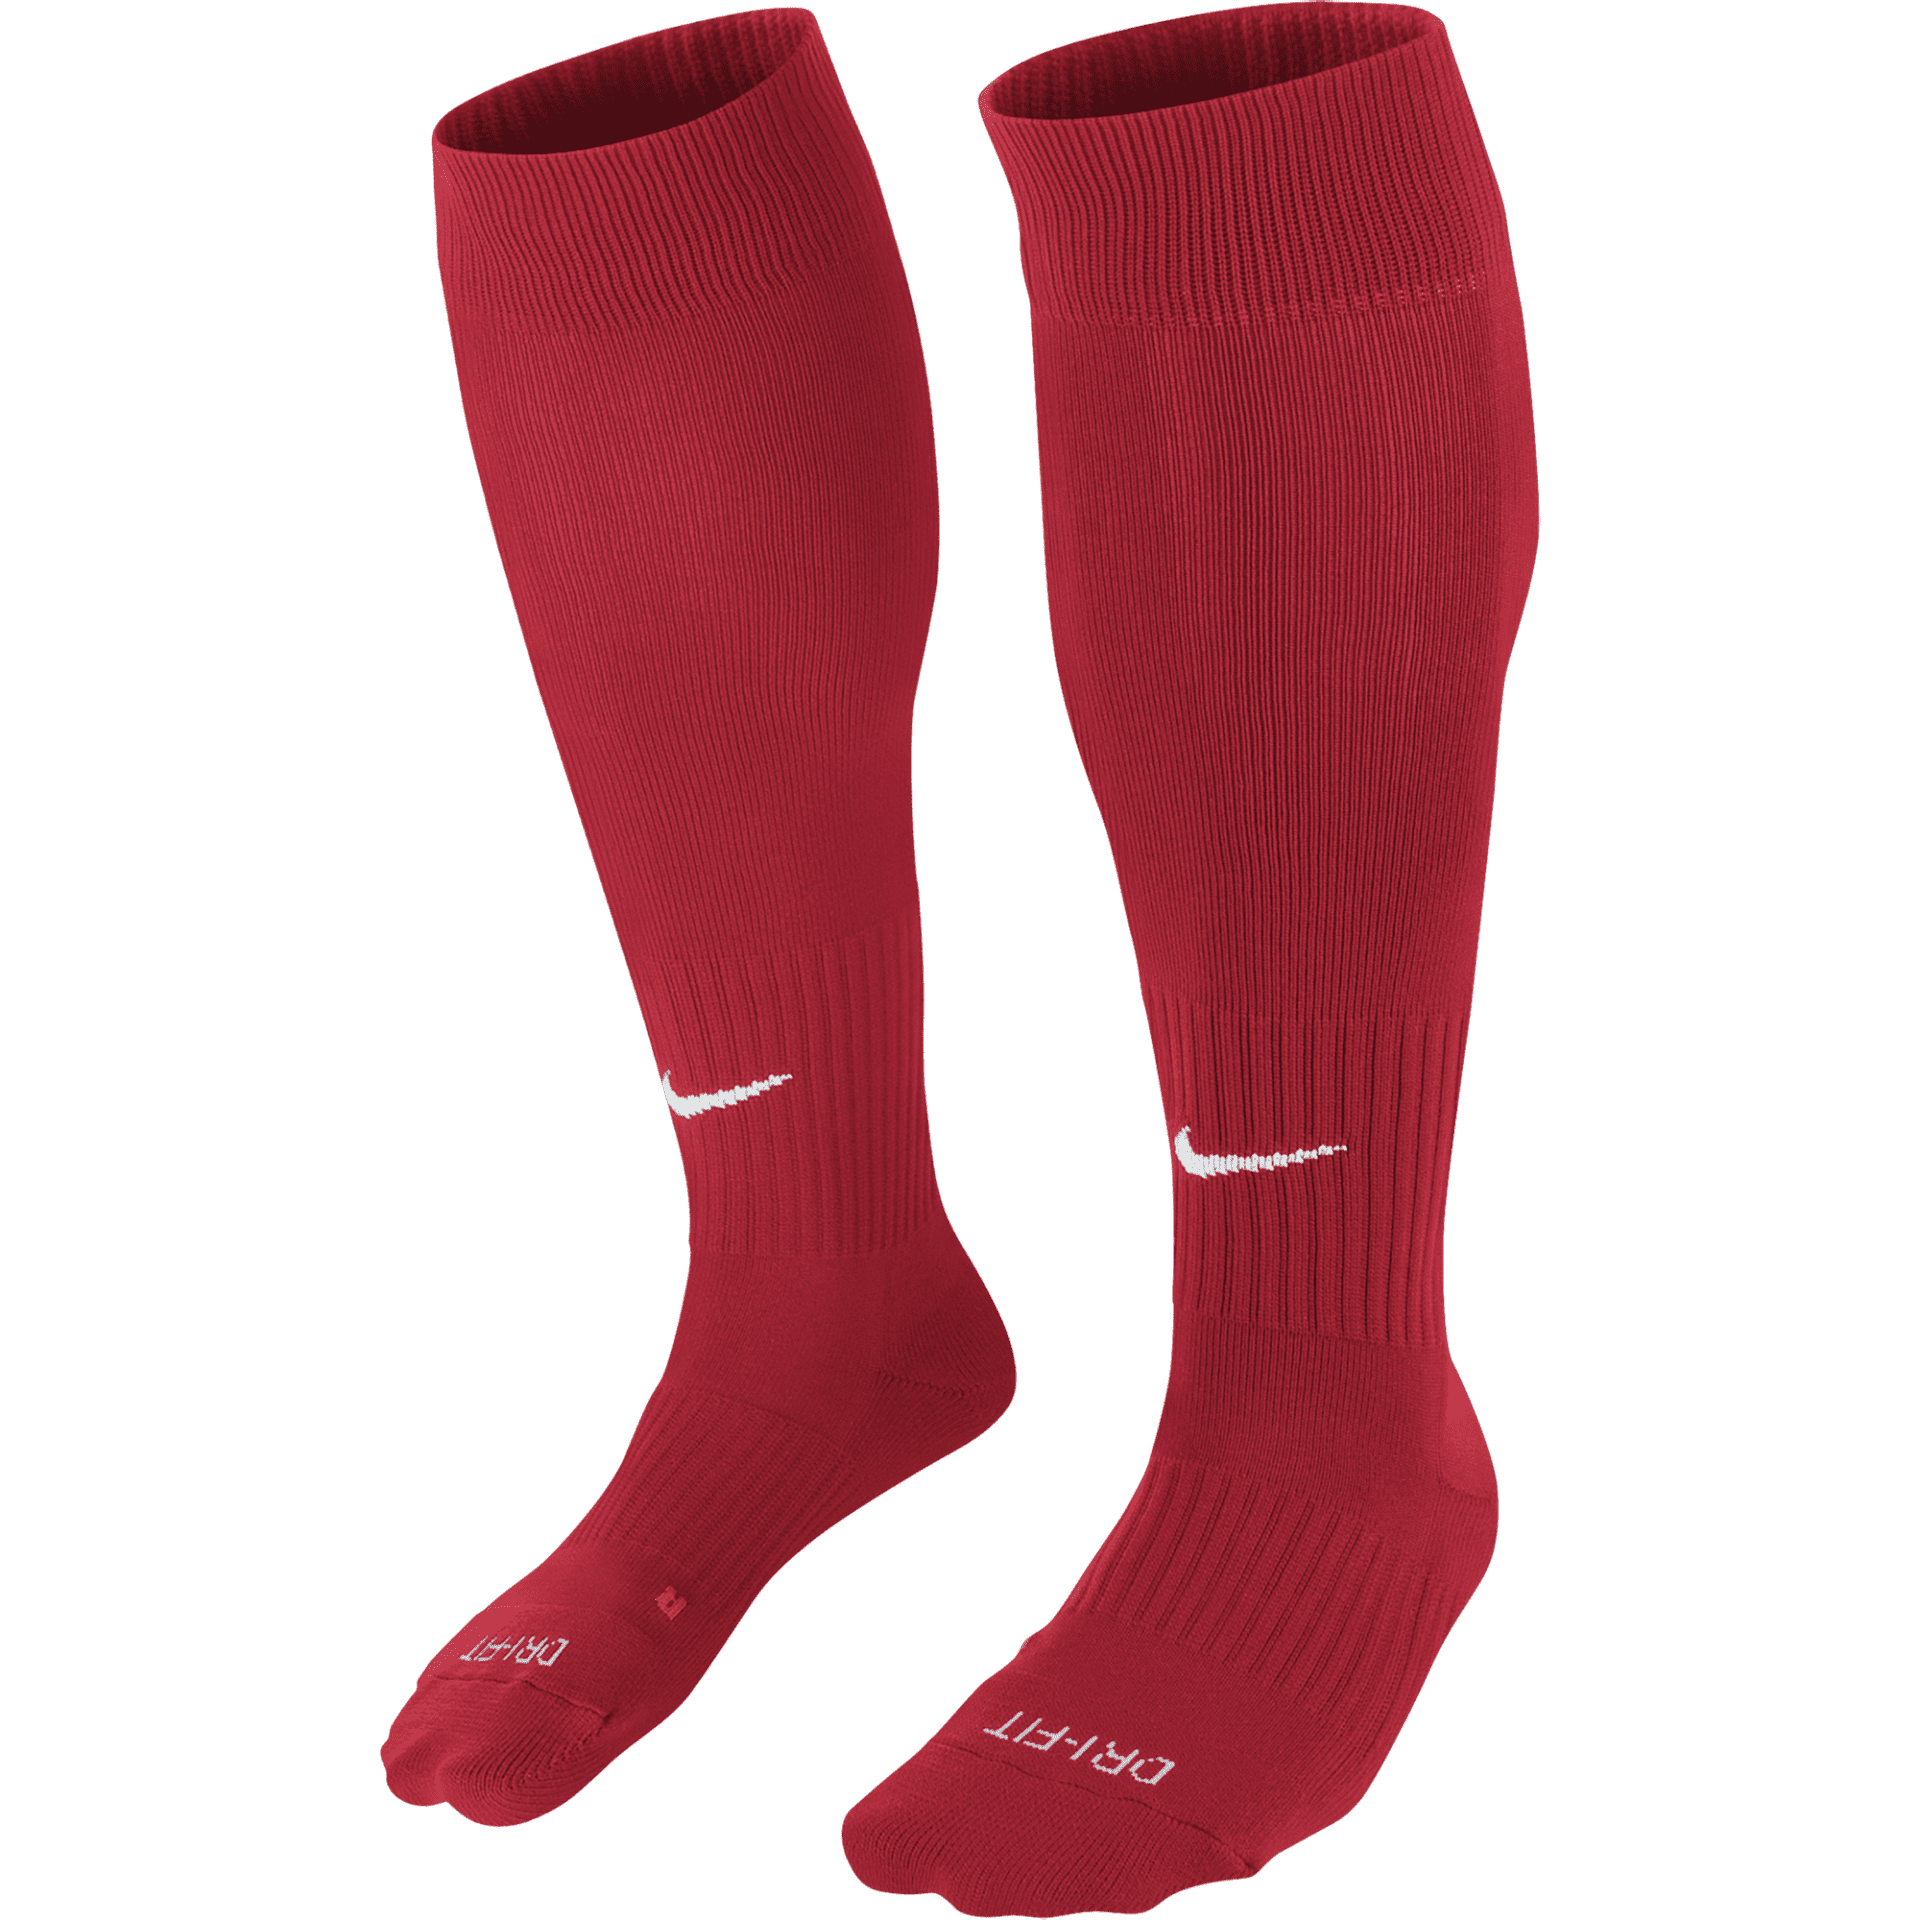 larne youth red socks 34900 p